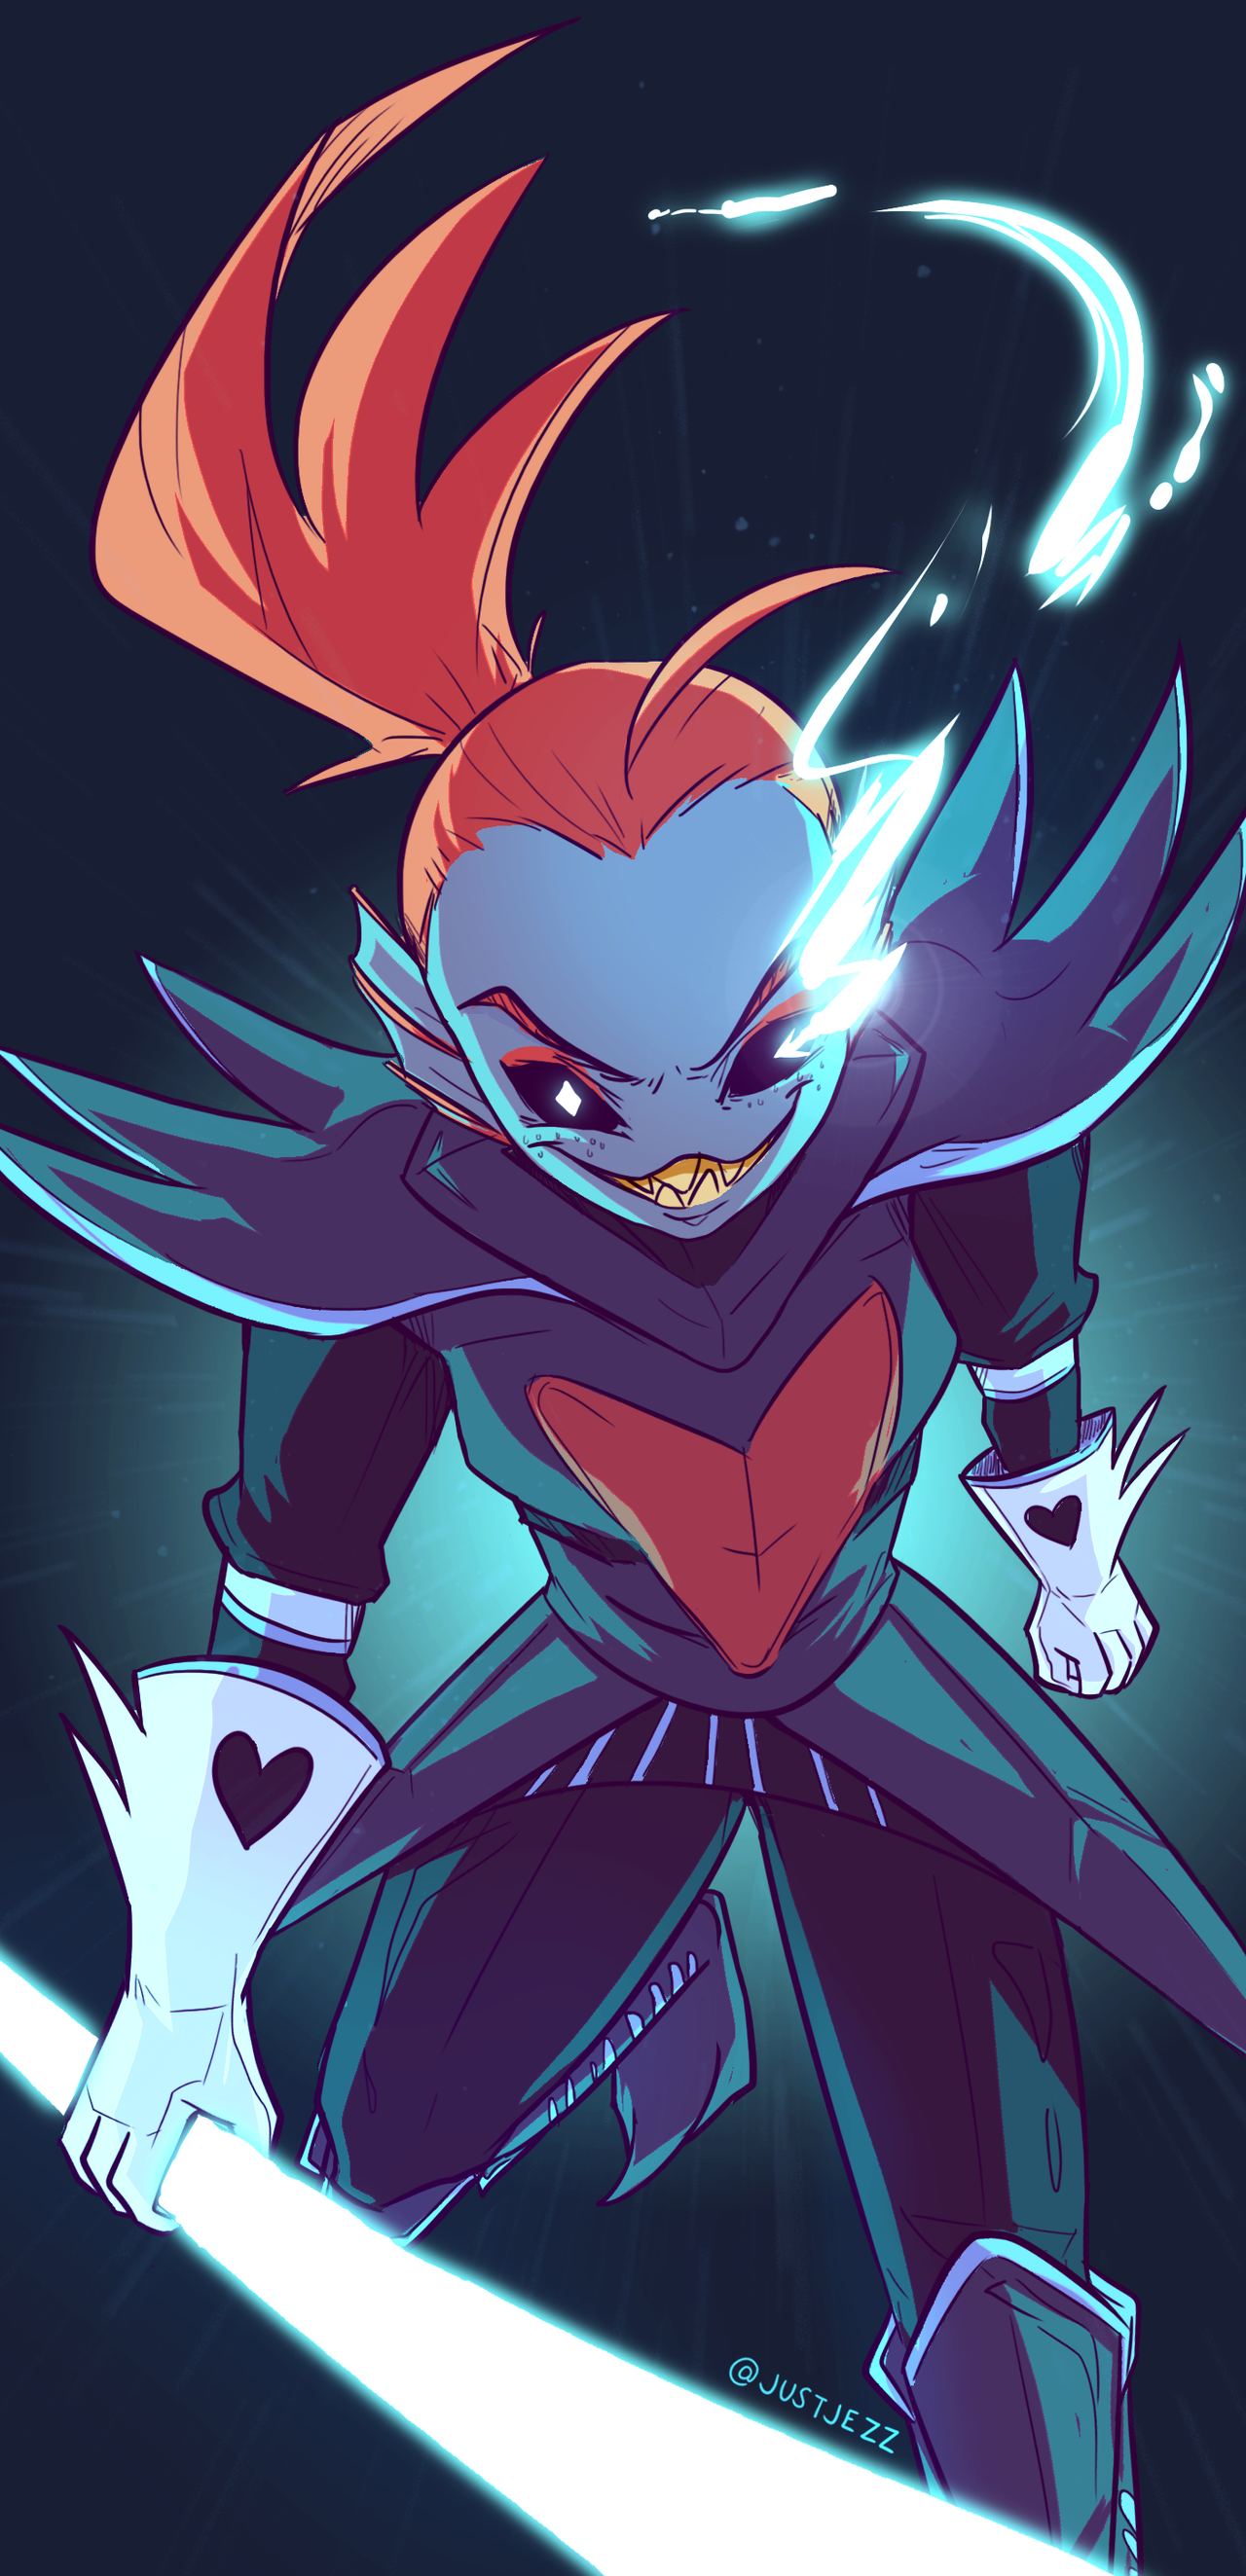 Undertale undyne the undying